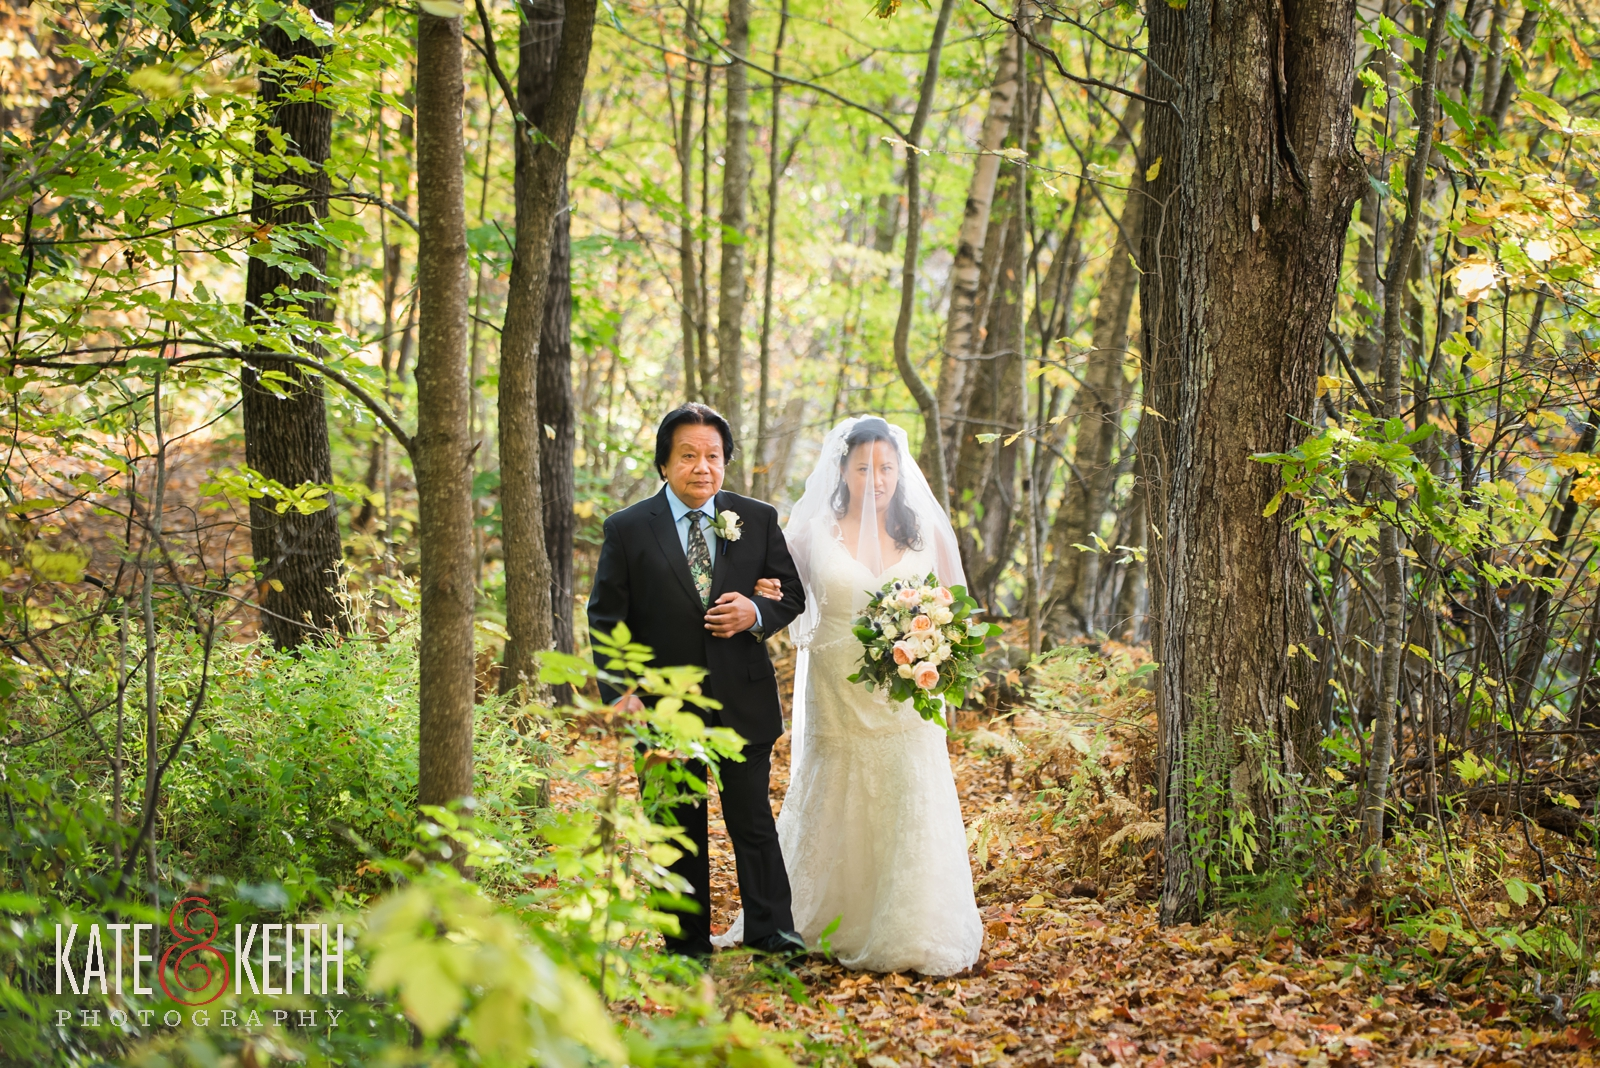 wedding weekend, Jackson, New Hampshire, Whitney's Inn, wedding ceremony, wedding photographers, outdoor wedding ceremony, weekend events, outdoor wedding,  autumn wedding, fall wedding, mountain wedding, weekend wedding, first look, New England, natural wedding photos, lace wedding gown, bridal processional